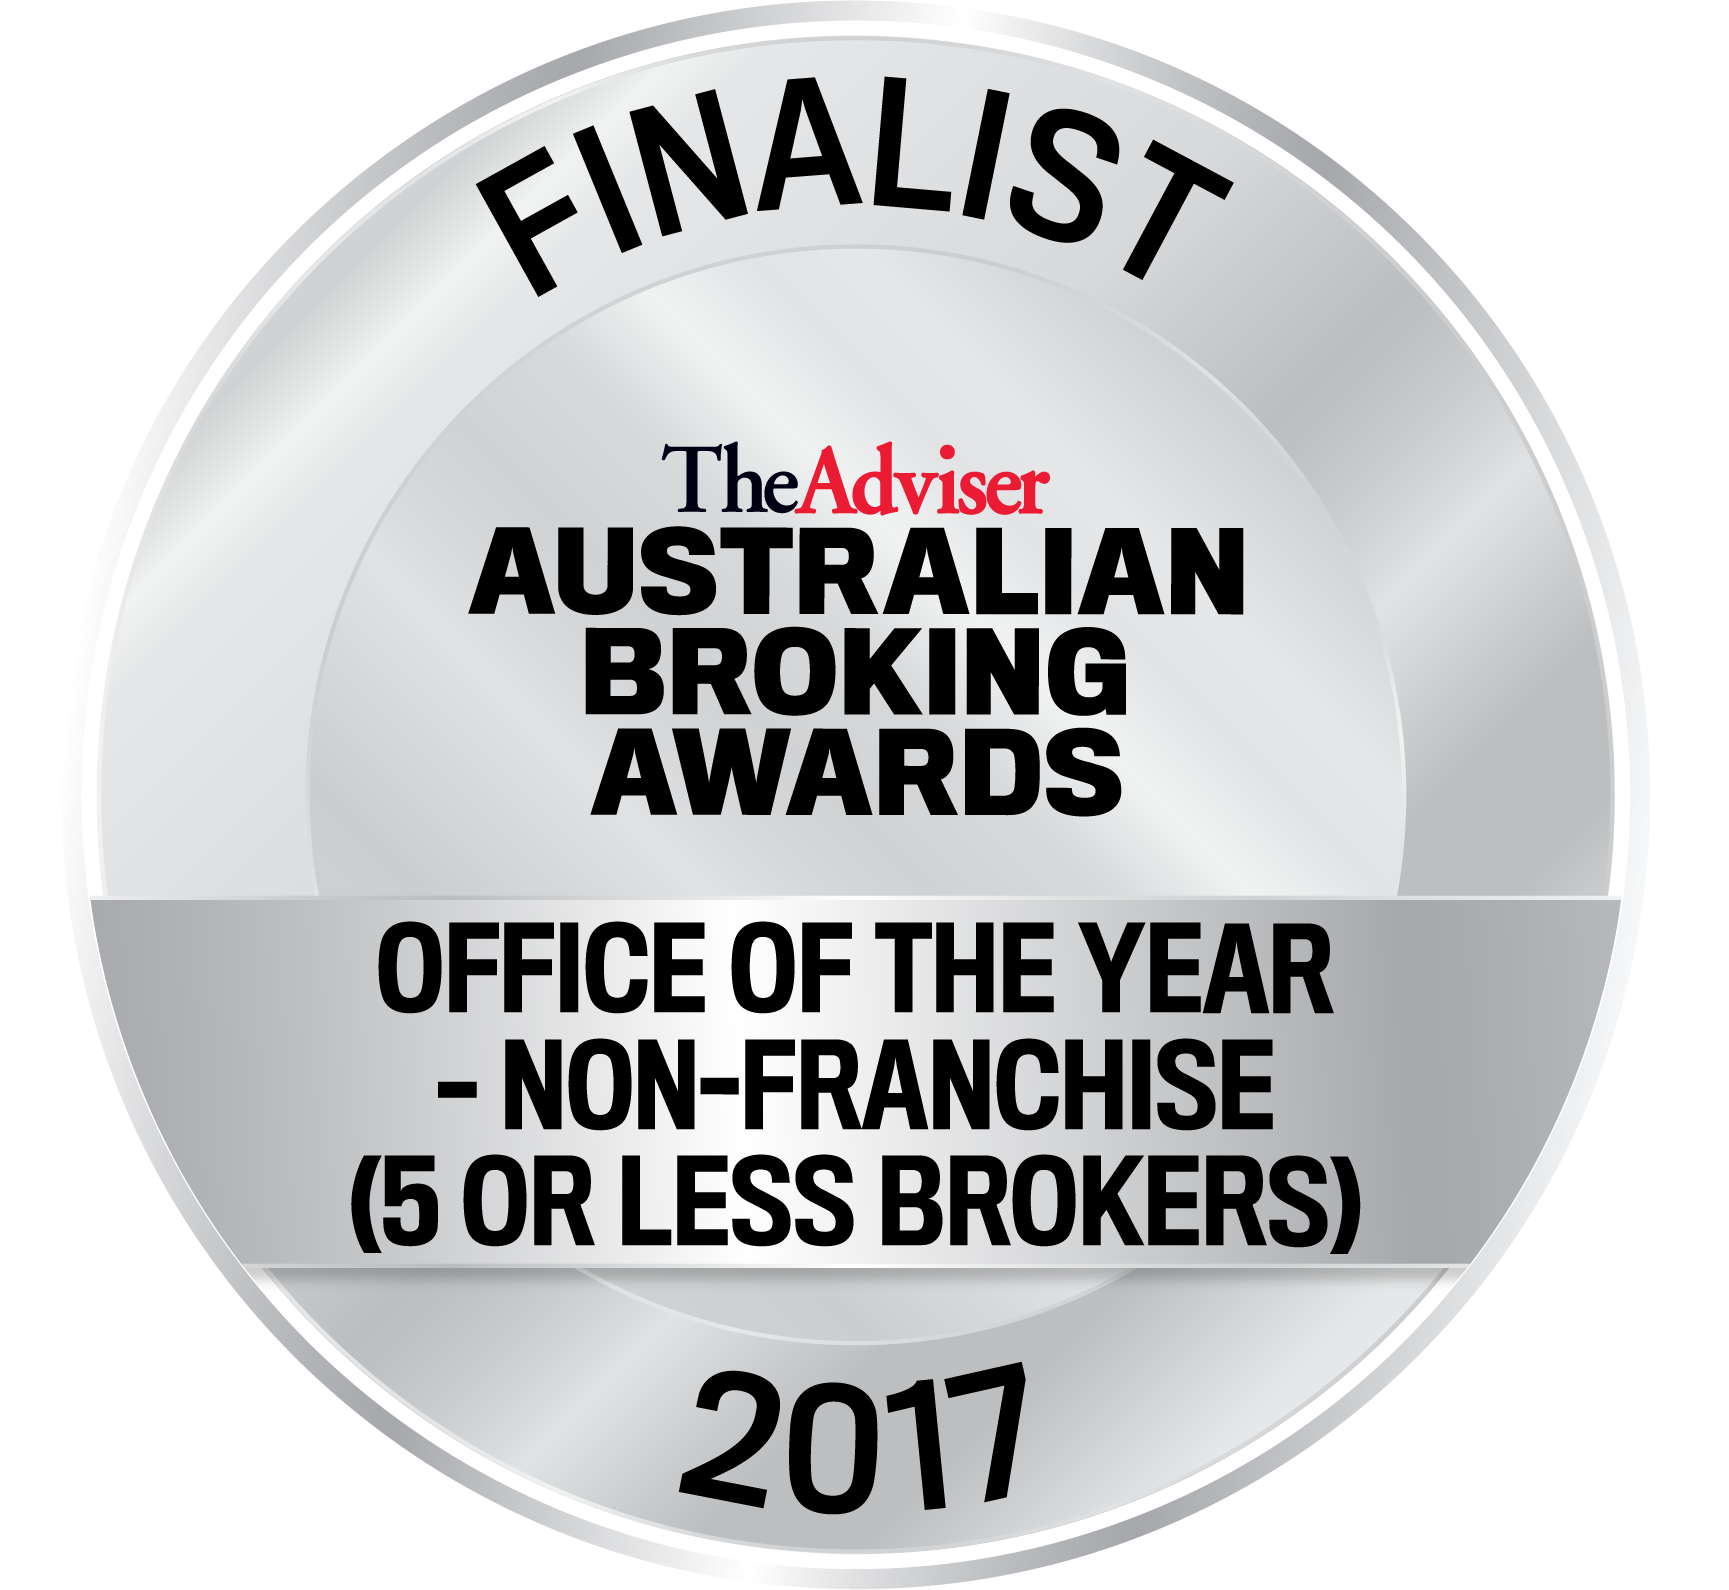 ABA 2017 Finalist Office of the Year